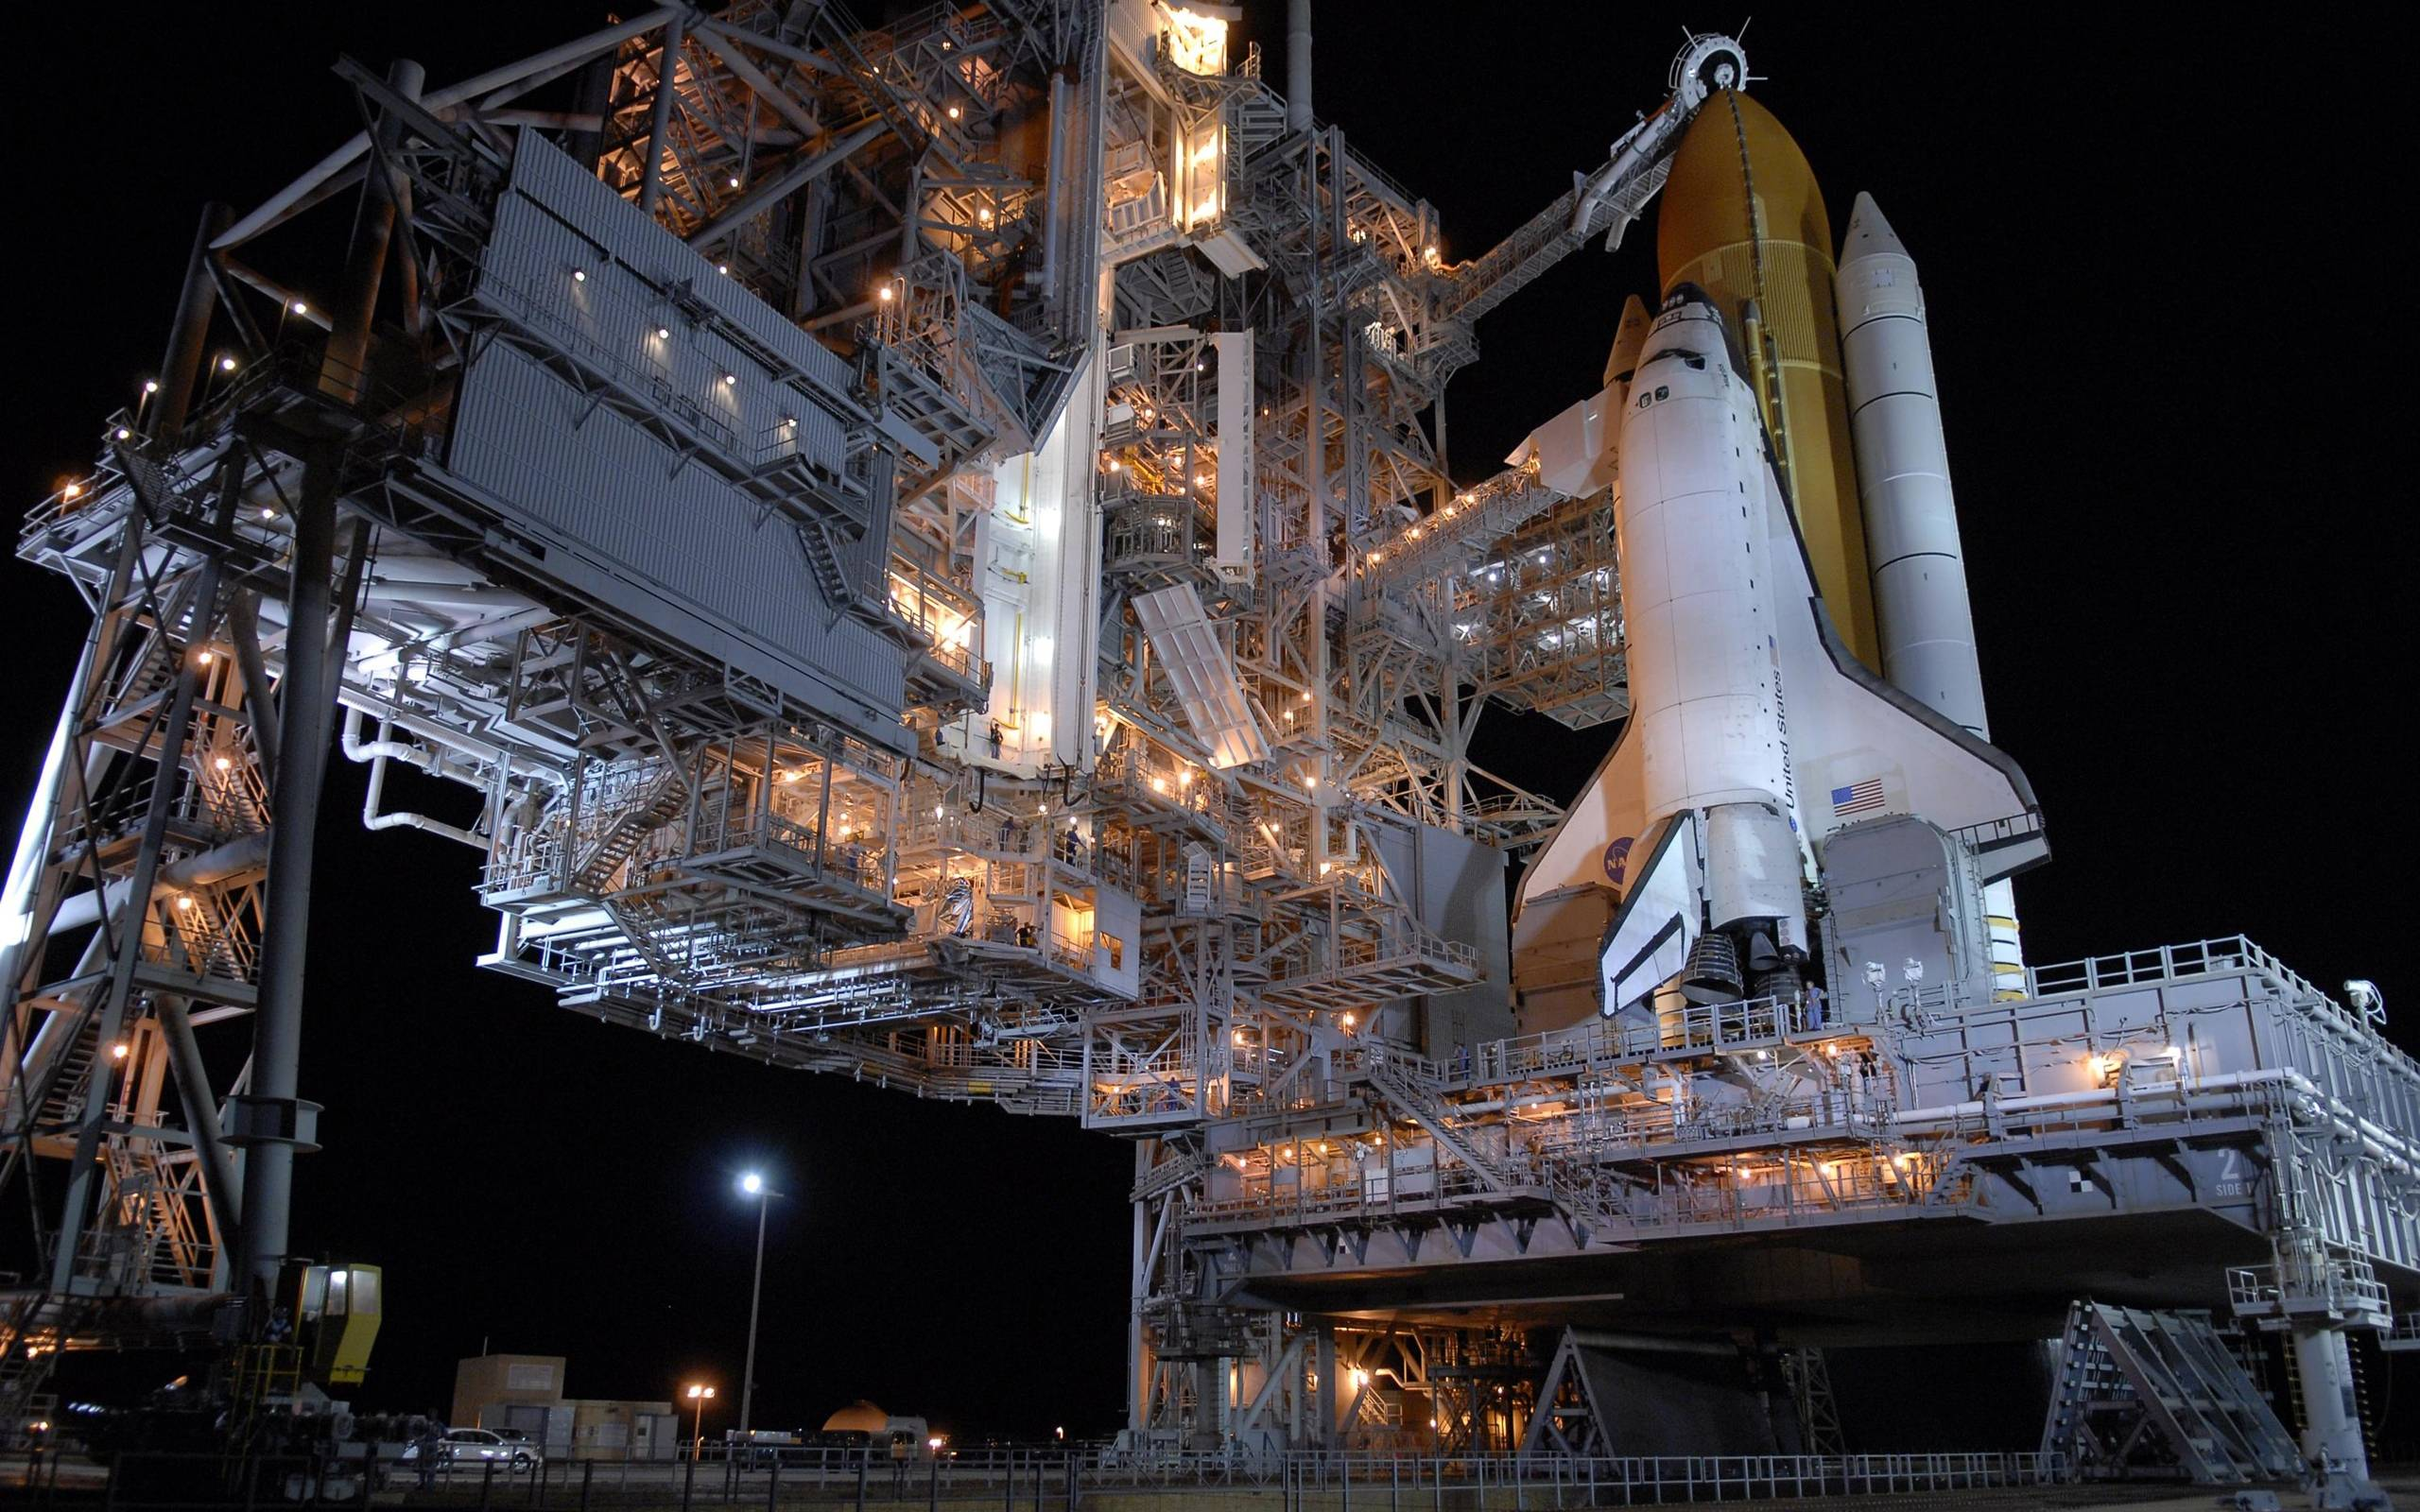 space shuttle launch game - photo #45